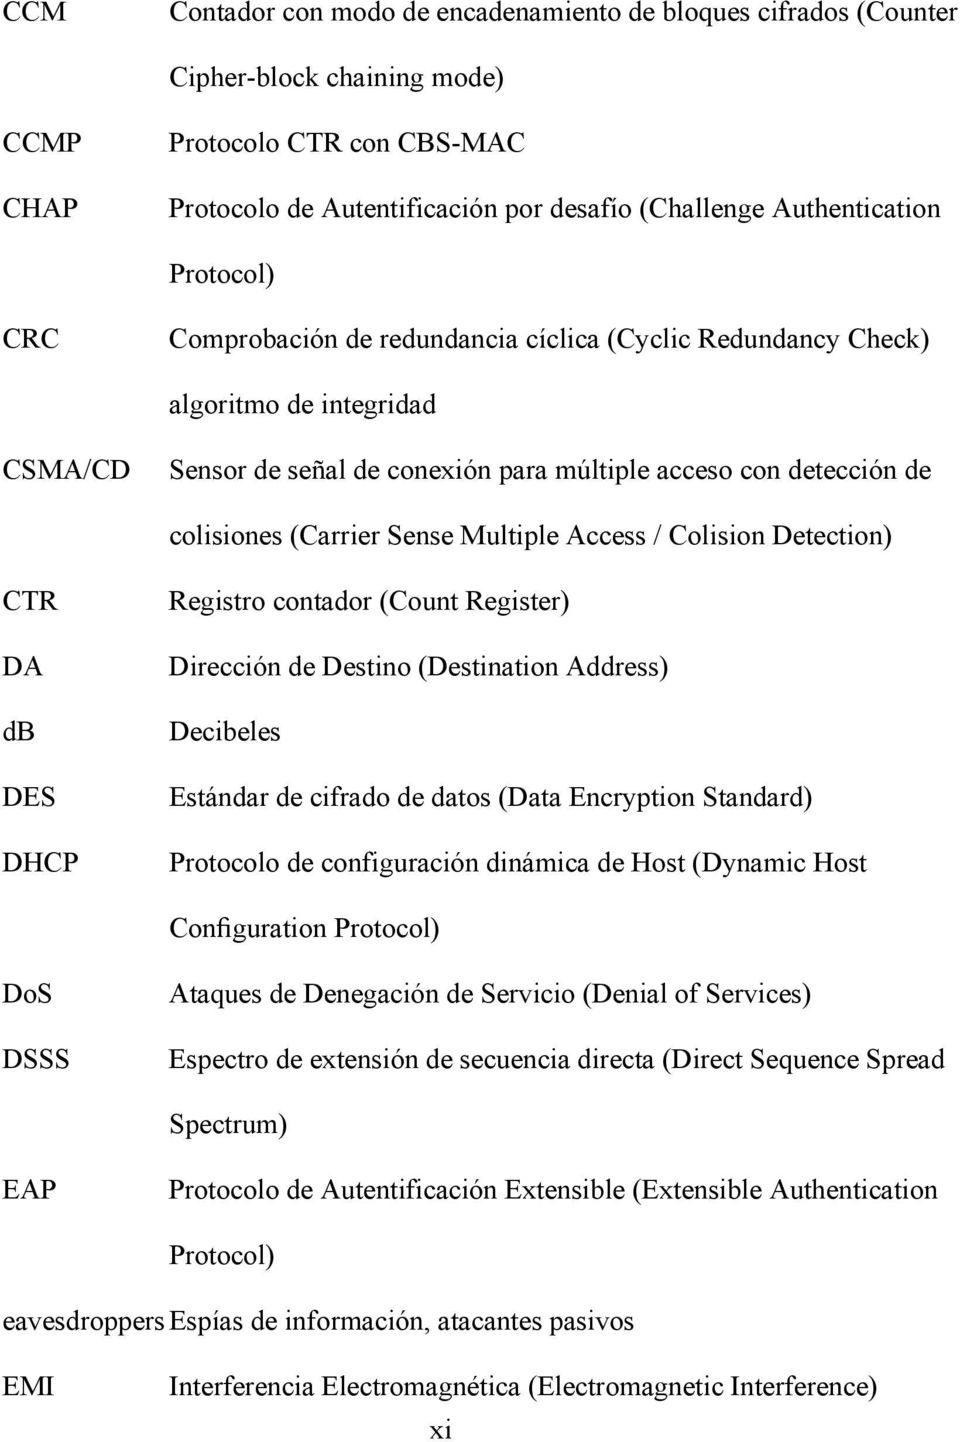 Multiple Access / Colision Detection) CTR DA db DES DHCP Registro contador (Count Register) Dirección de Destino (Destination Address) Decibeles Estándar de cifrado de datos (Data Encryption